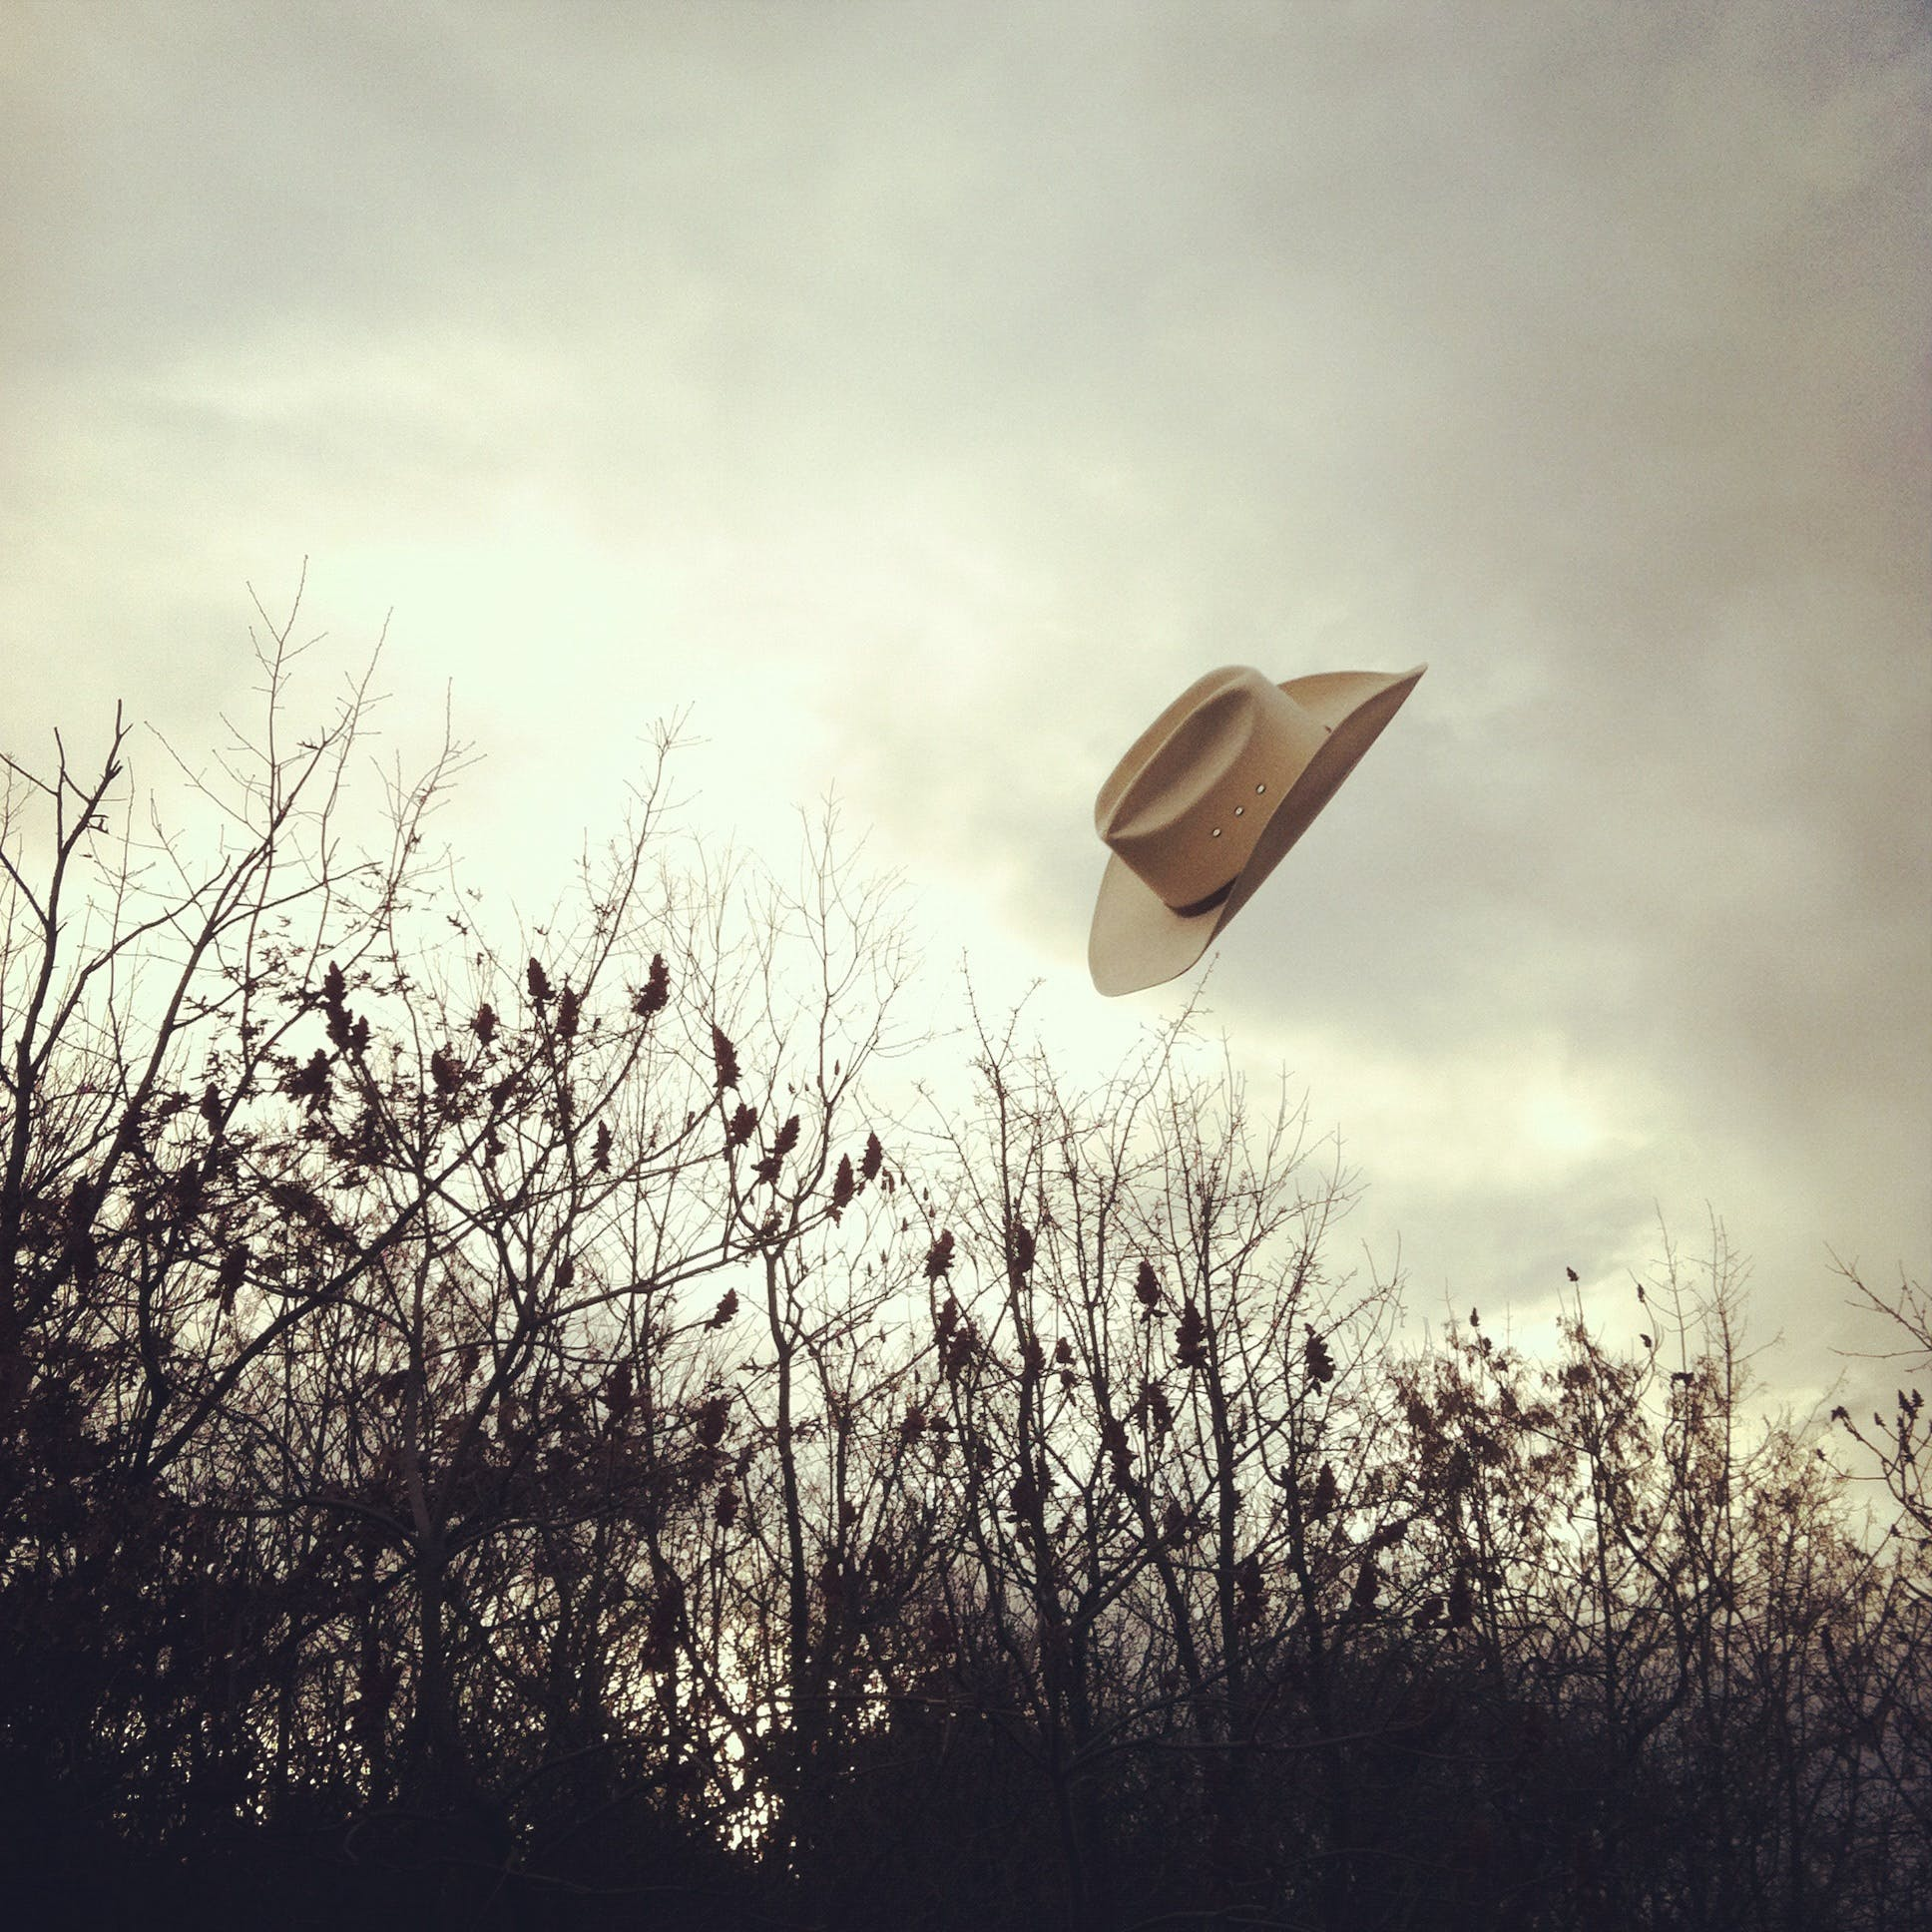 Free stock photo of flying hat